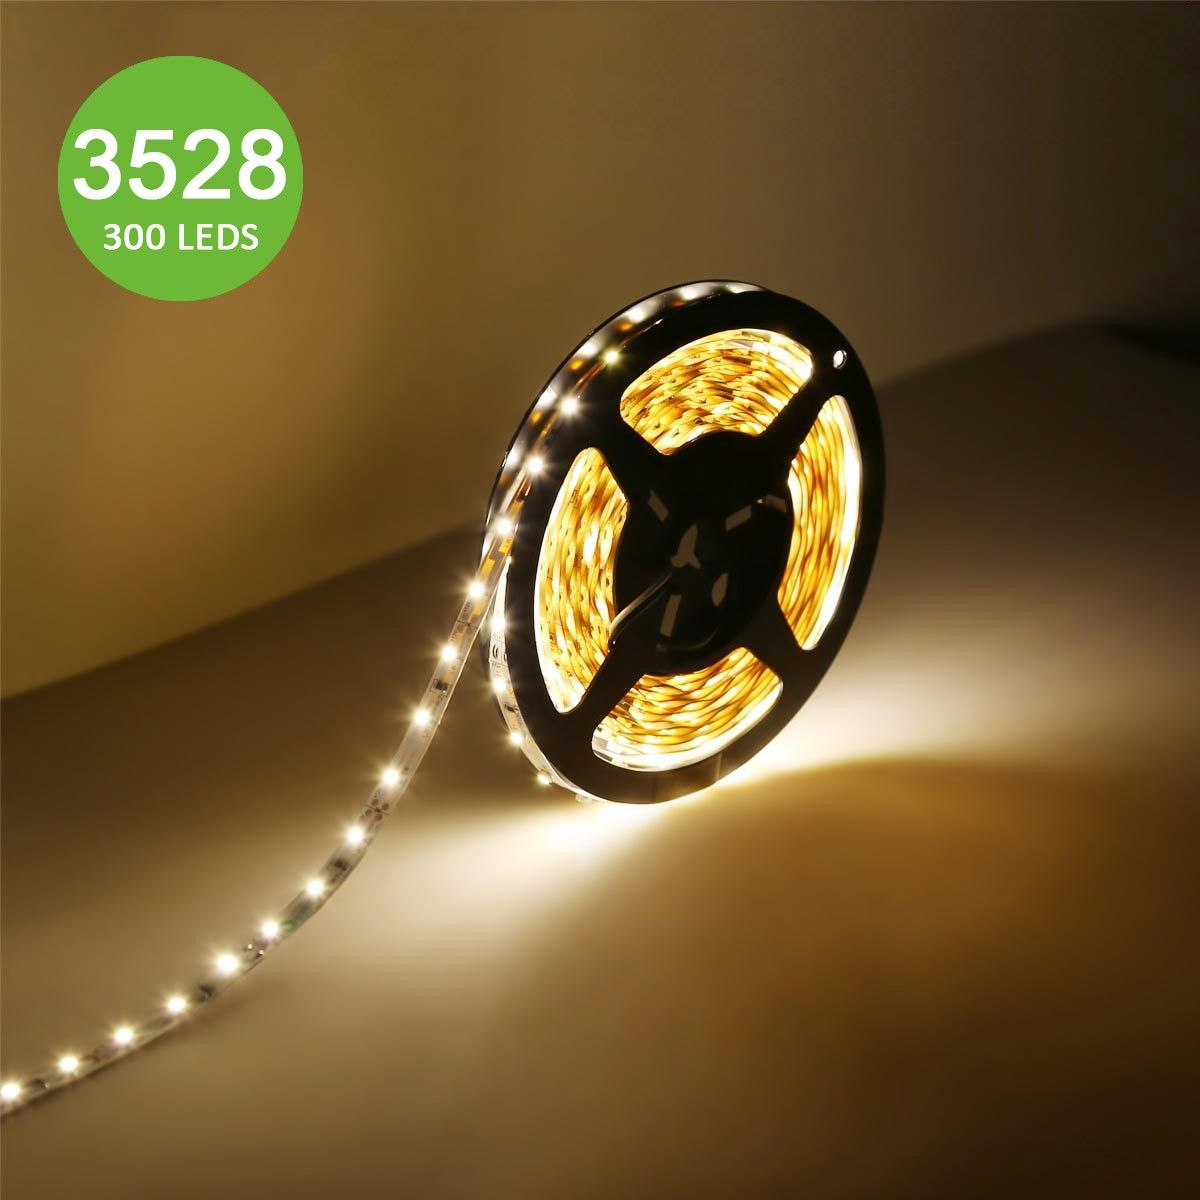 164ft flexible led strip rope lights12v warm white 300 units 12v flexible led strip lights led tape warm white 300 units 3528 leds mozeypictures Image collections